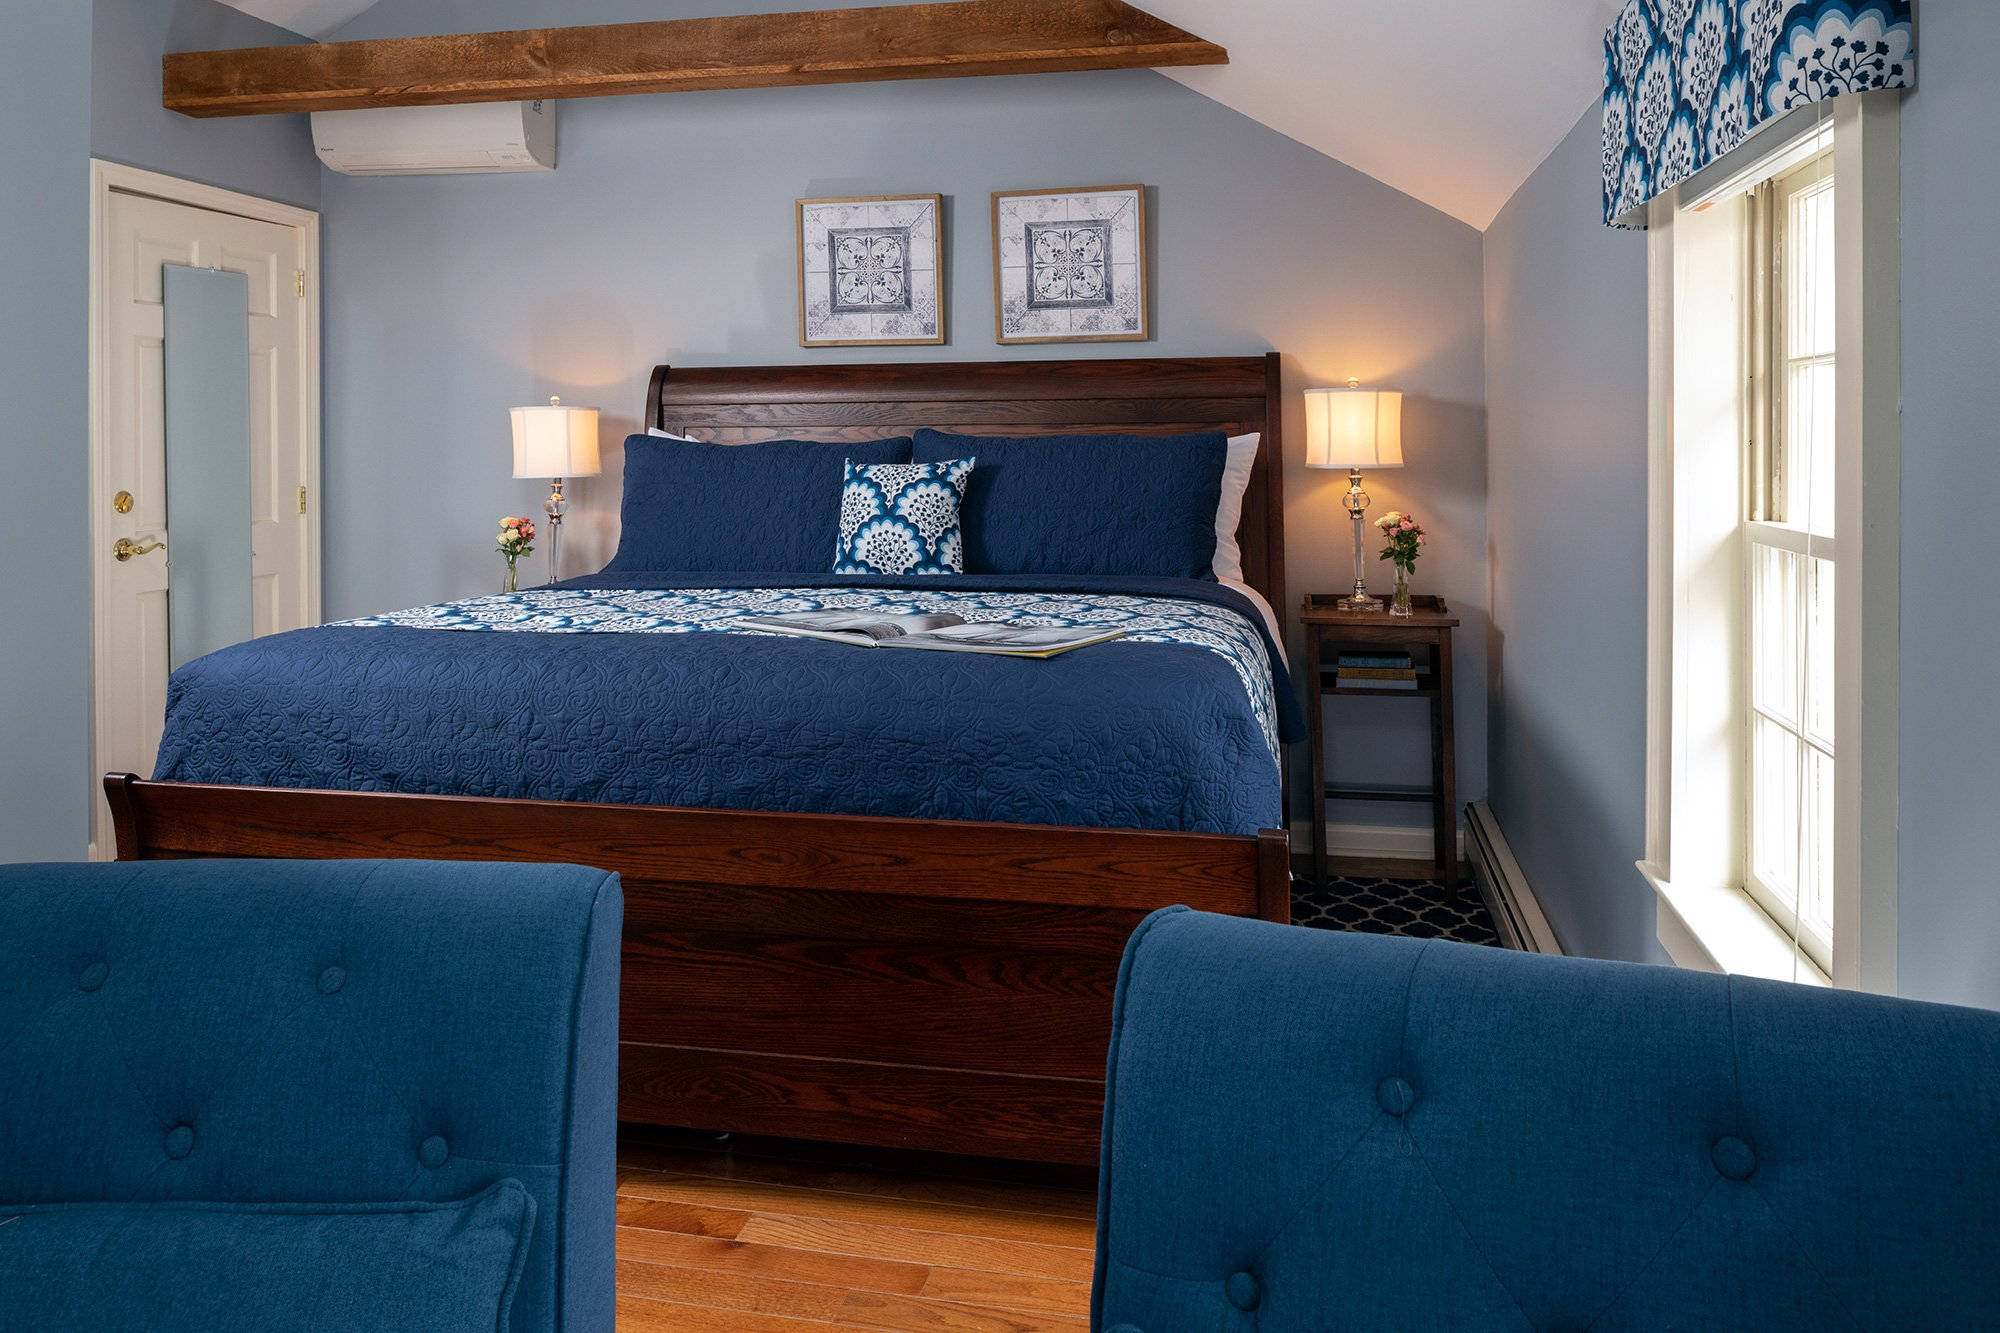 room with dark blue bedspread